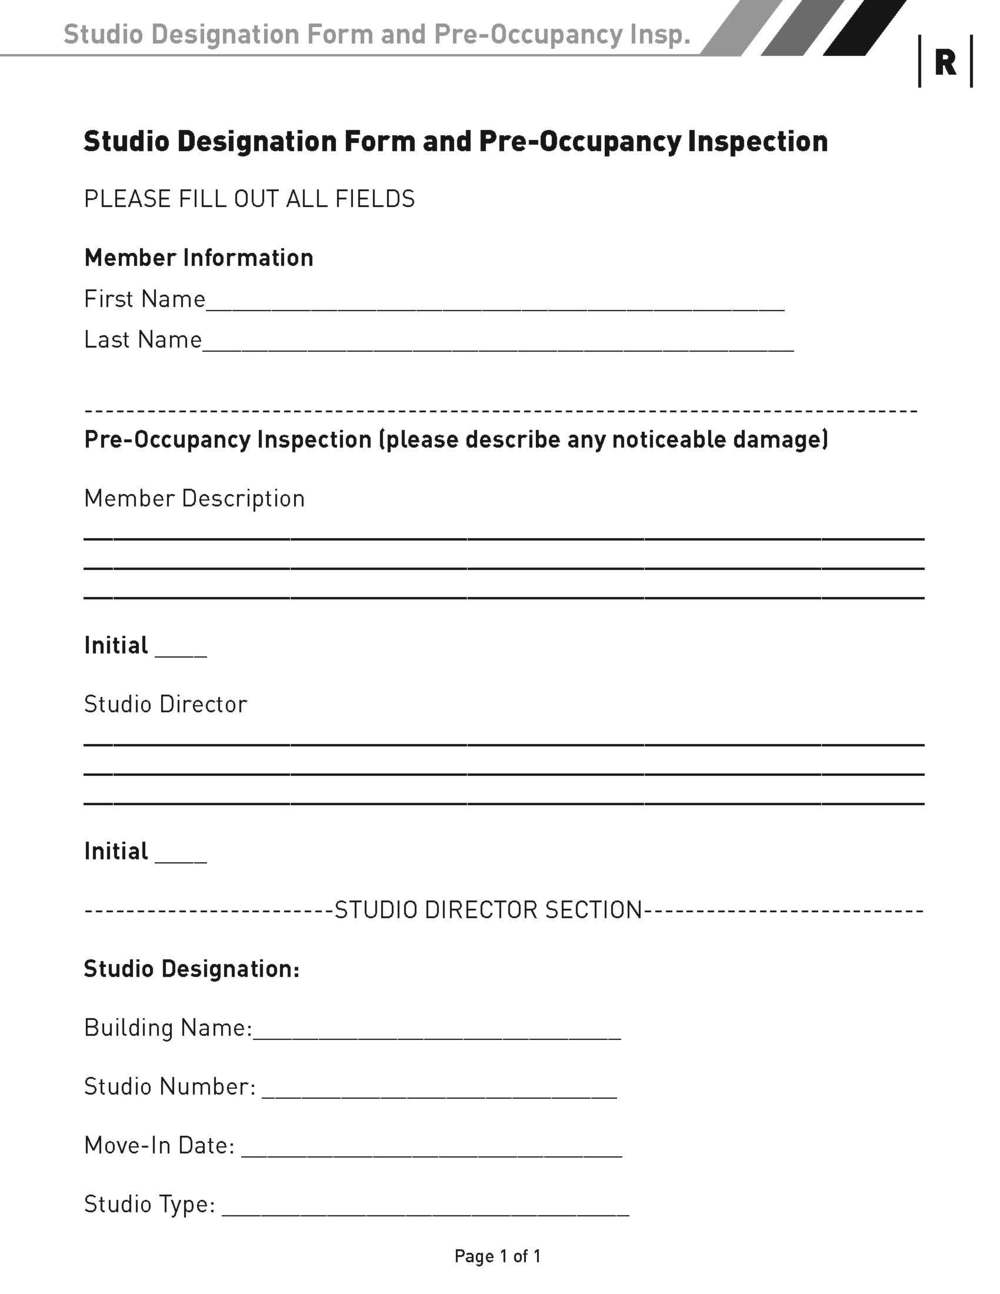 Studio Designation Form and Pre-Occupancy Inspection